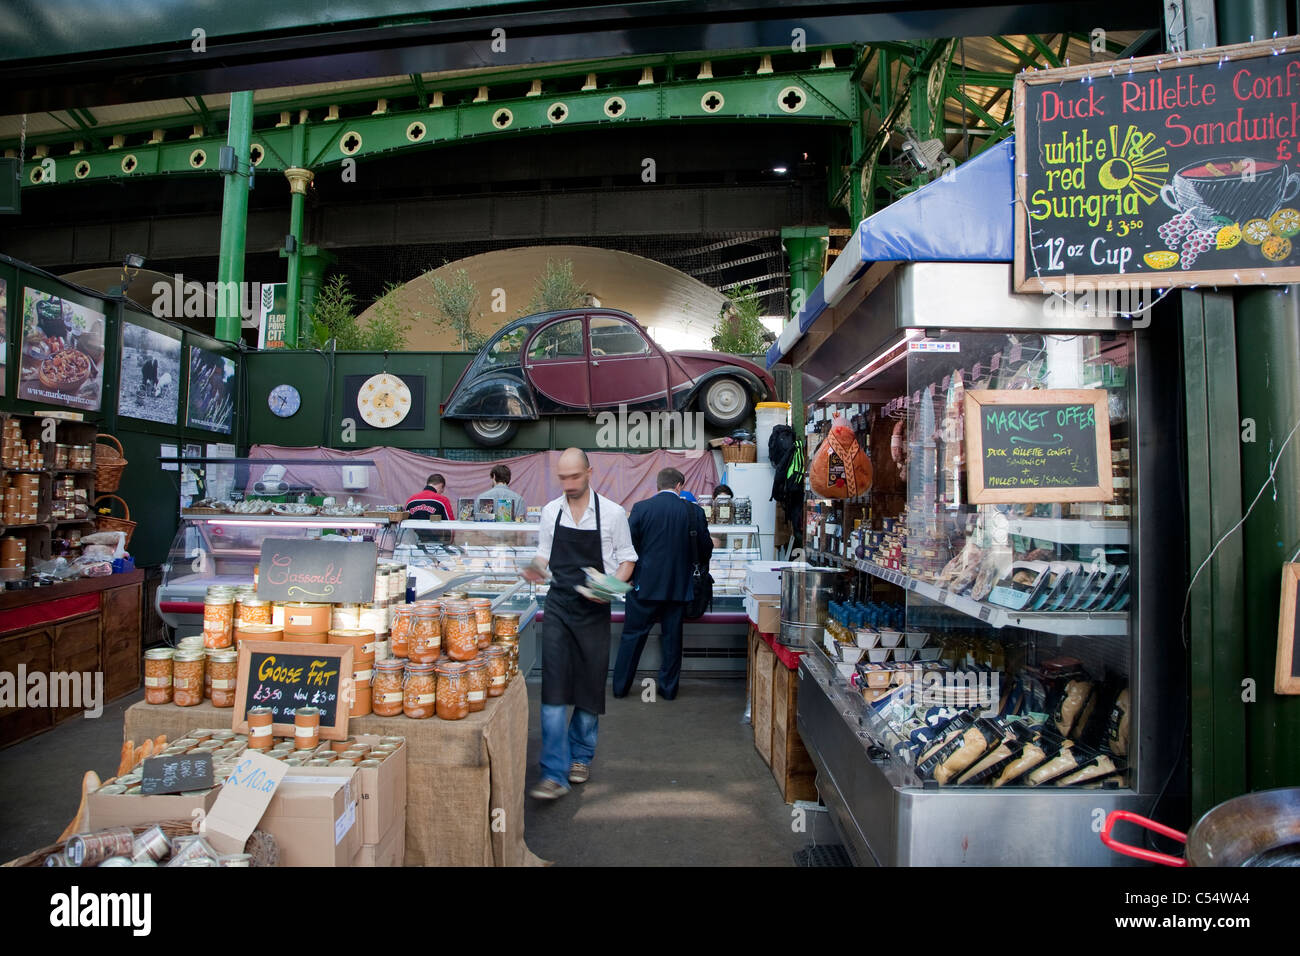 French Food Stall in Borough Market, London, UK - Stock Image